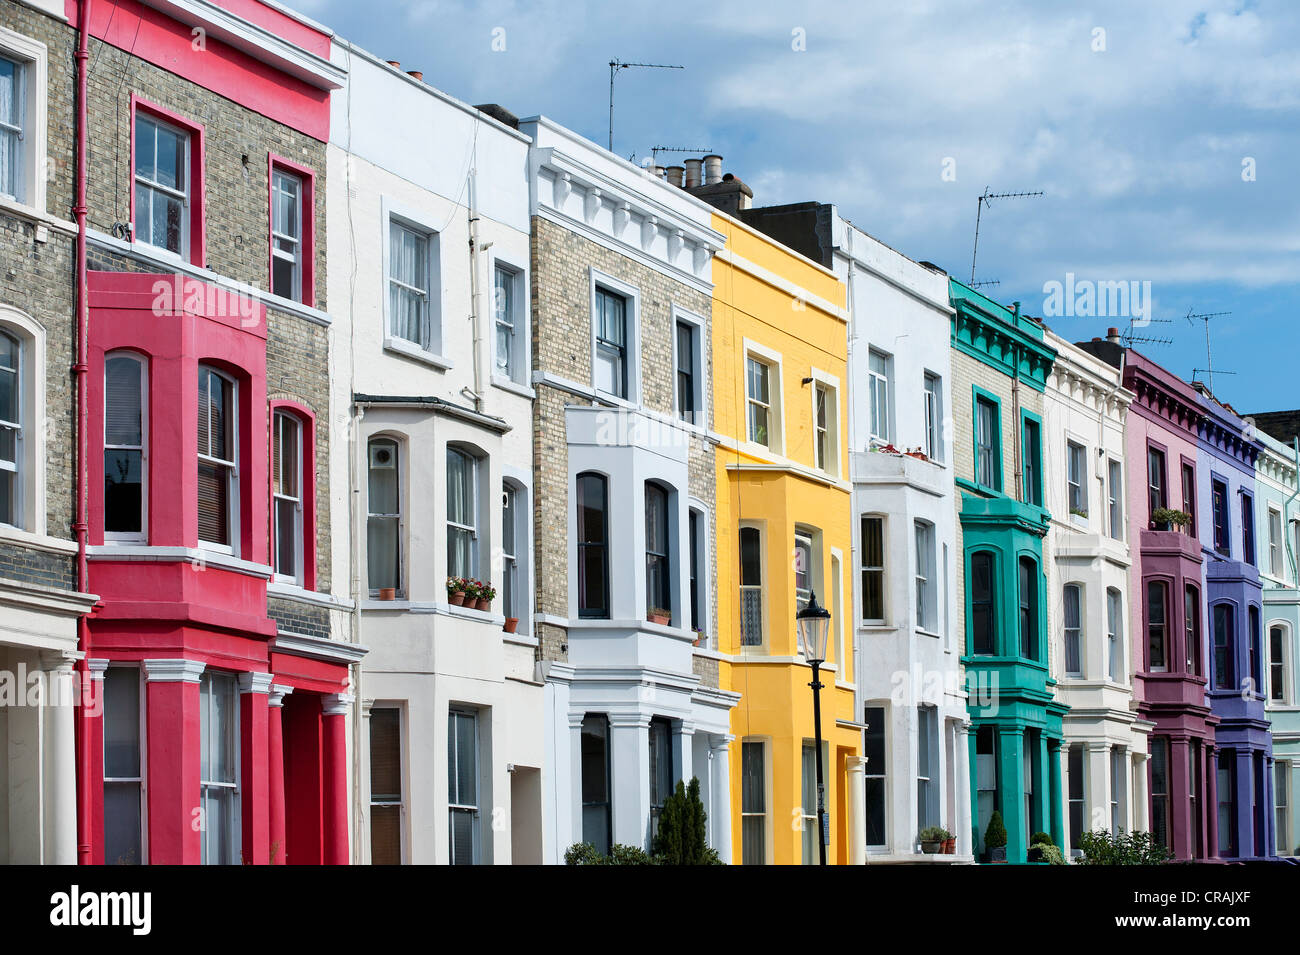 colourful terraced houses portobello road notting hill london stock photo royalty free image. Black Bedroom Furniture Sets. Home Design Ideas